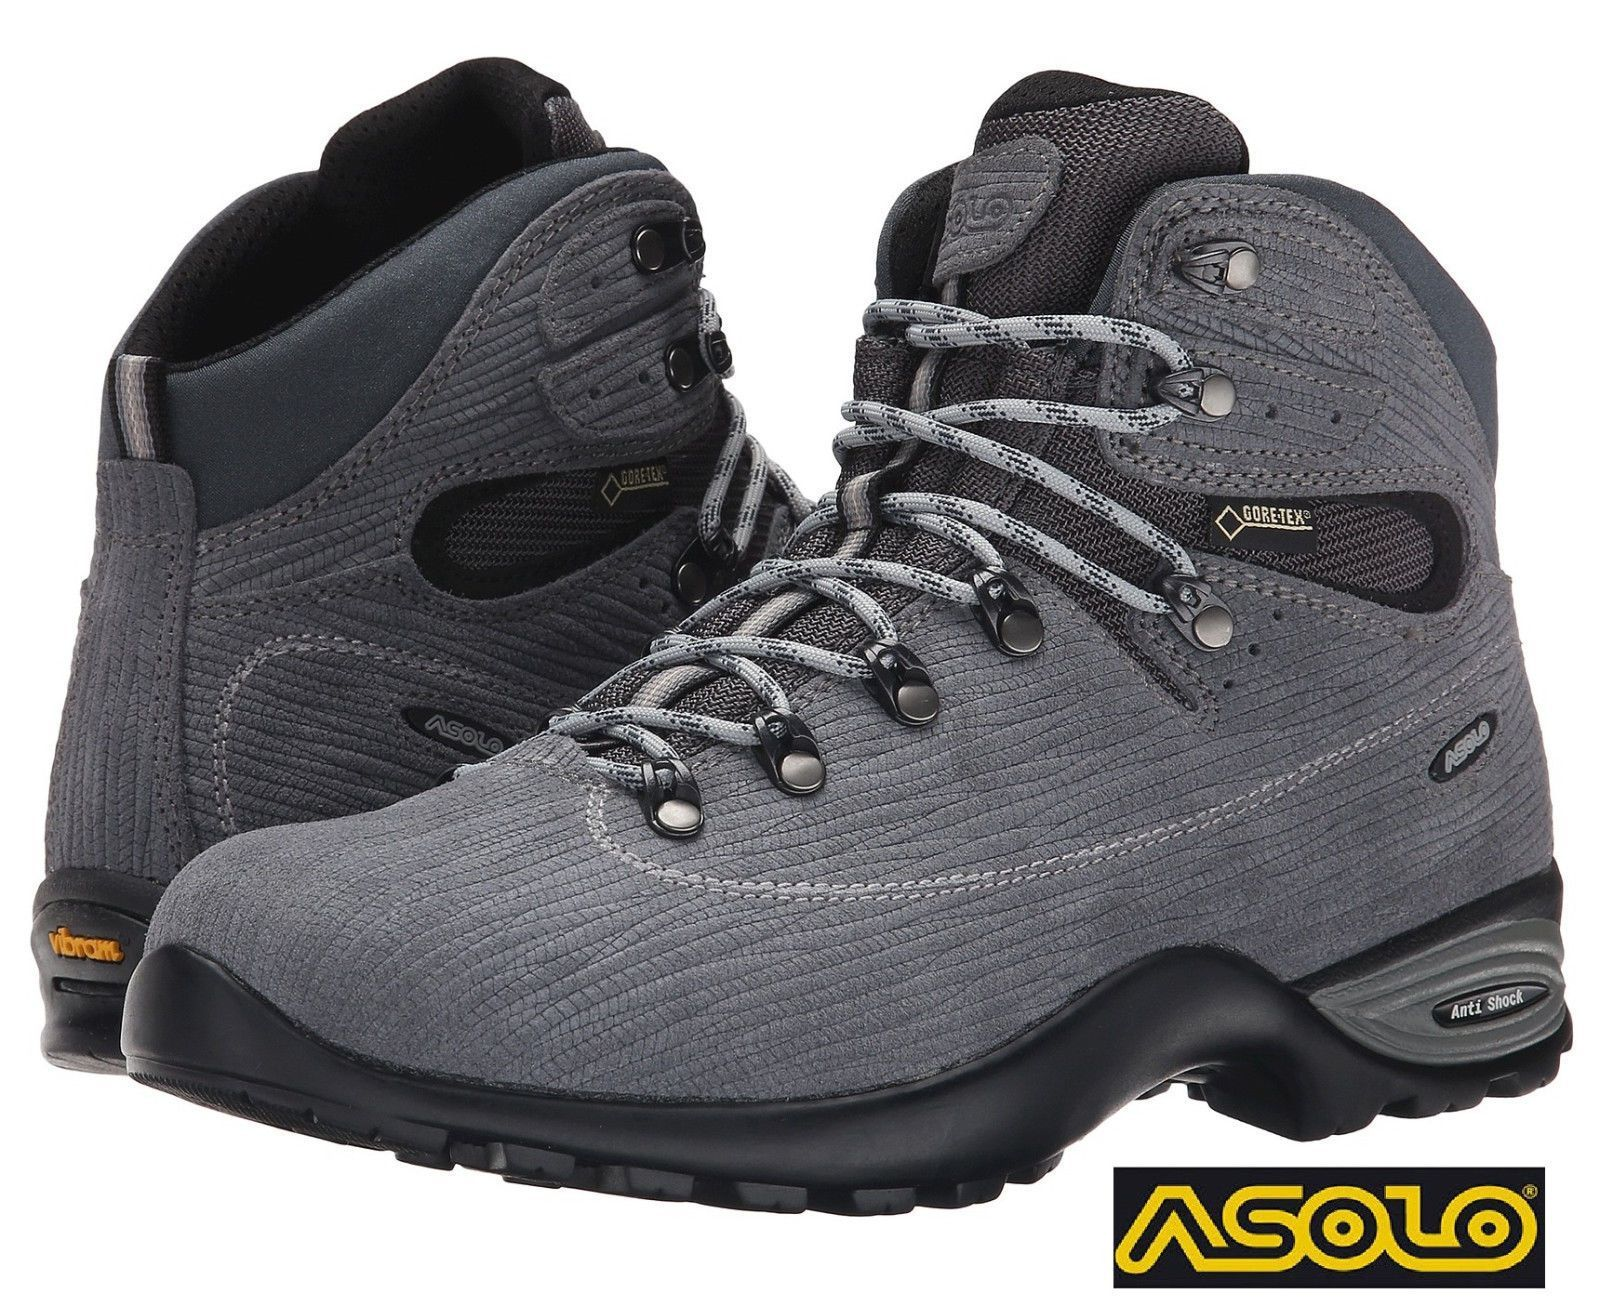 Nwb Asolo Women'S Tacoma Gore-Tex Hiking Boots Trail Winter Mountain  Waterproof